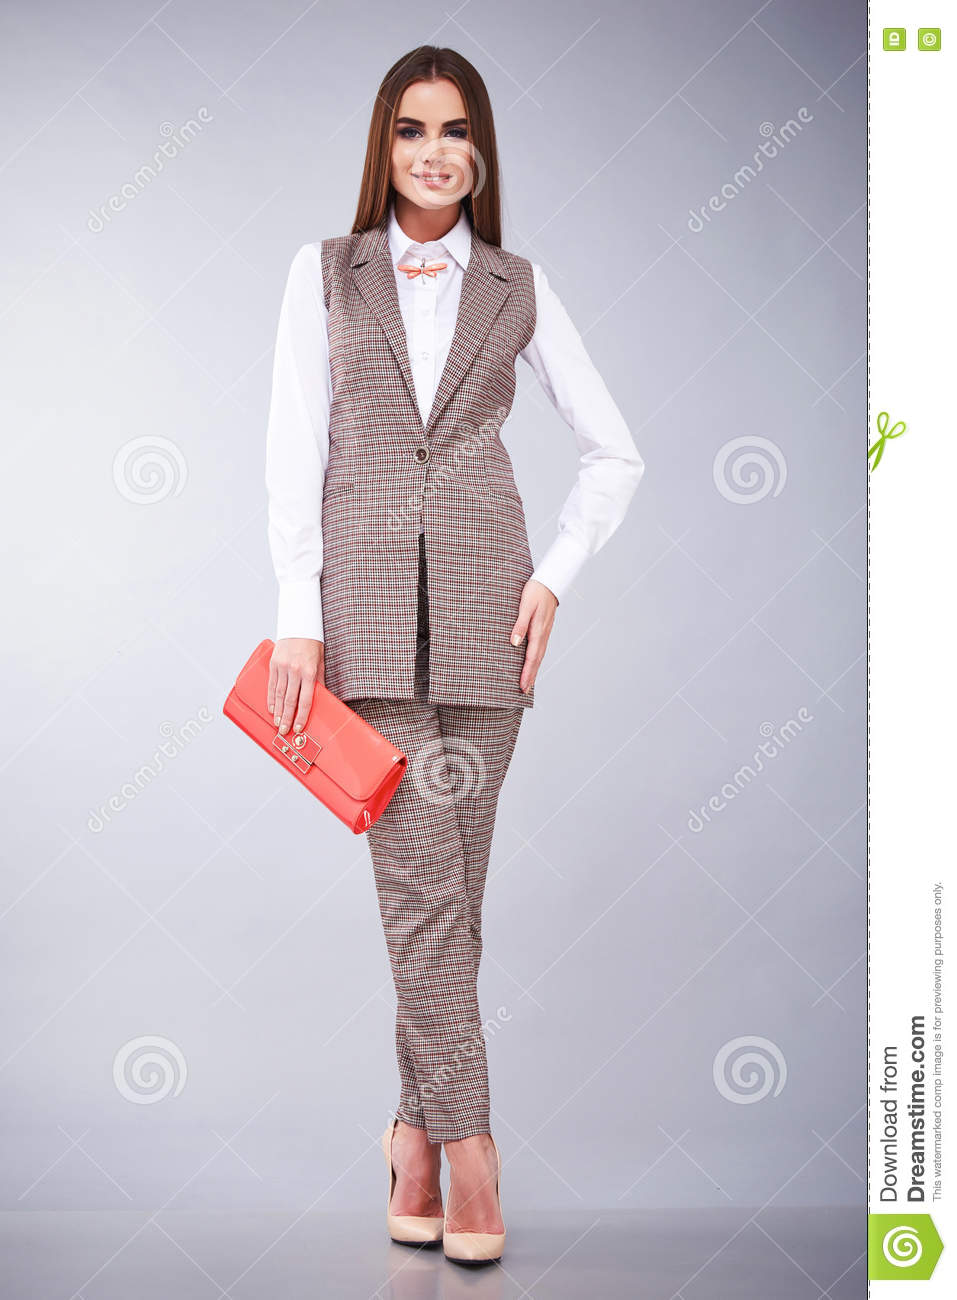 Beautiful Young Business Woman Brunette Hair With Evening Make Up Wearing Casual Suit Office Style High Heeled Shoes Business Clothes For Meetings And Walks